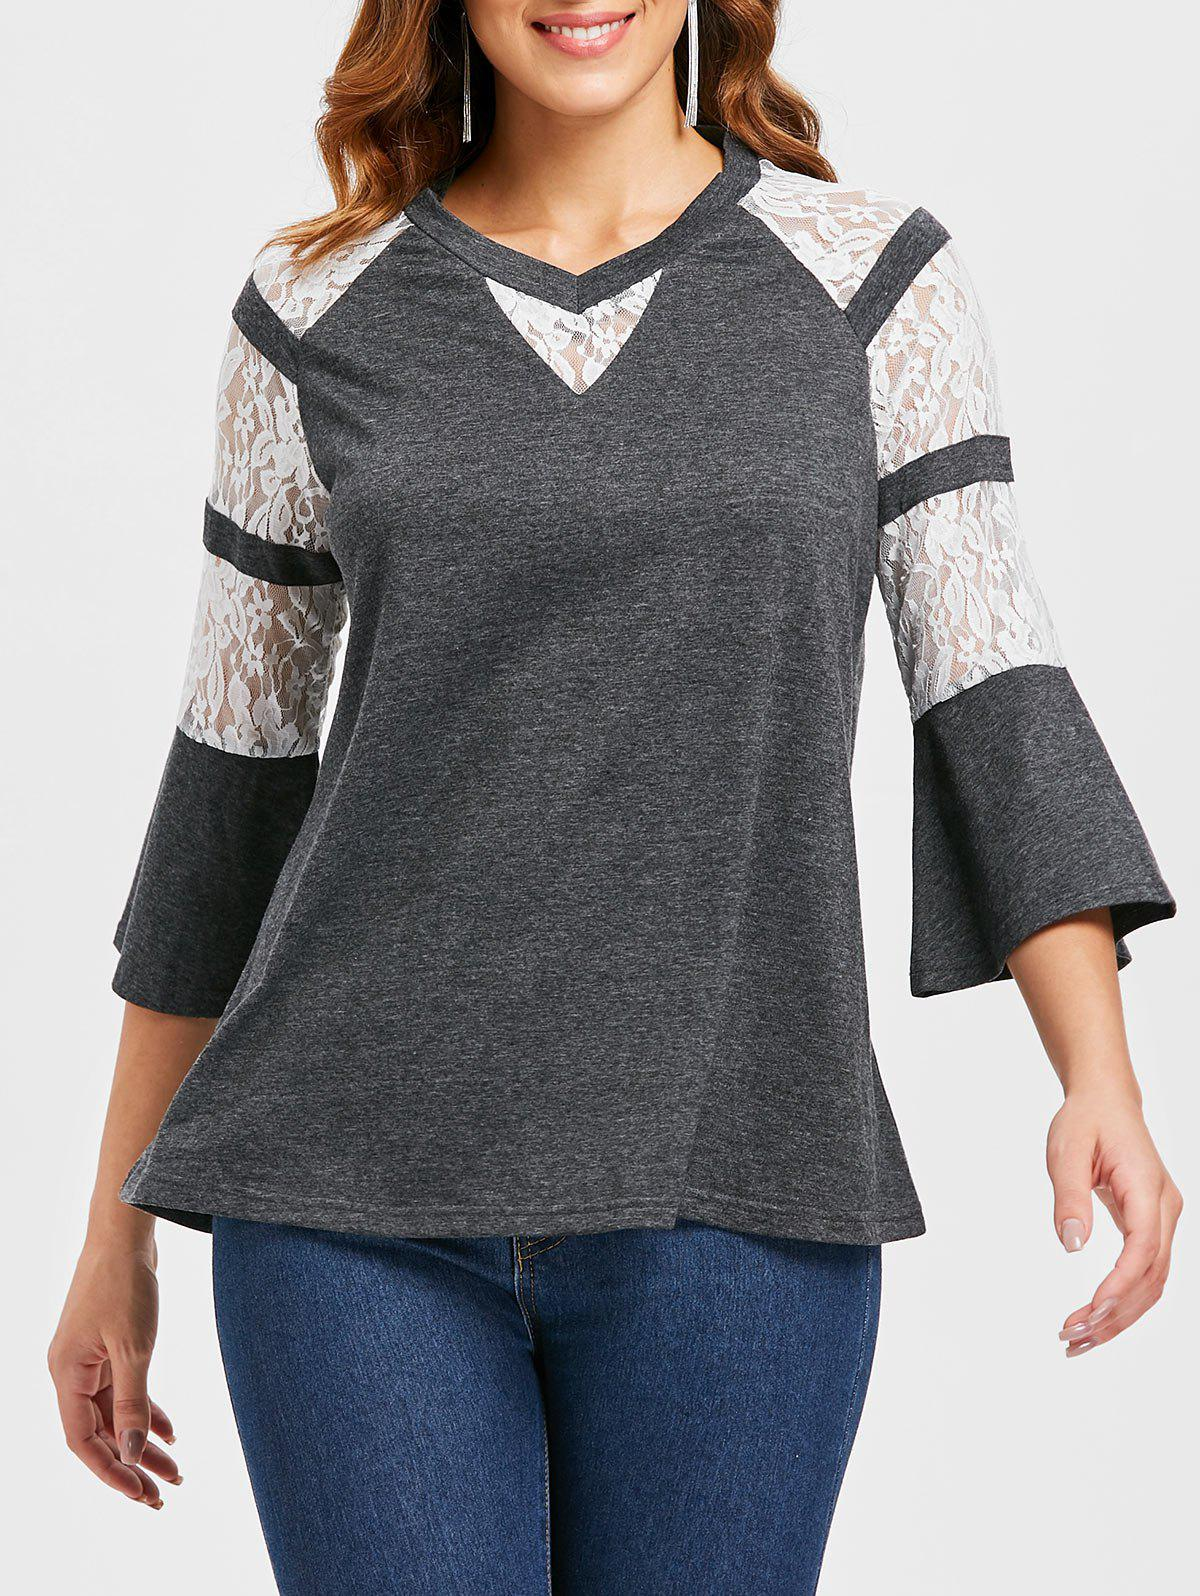 Bell Sleeve Lace Insert T-shirt - GRAY 2XL